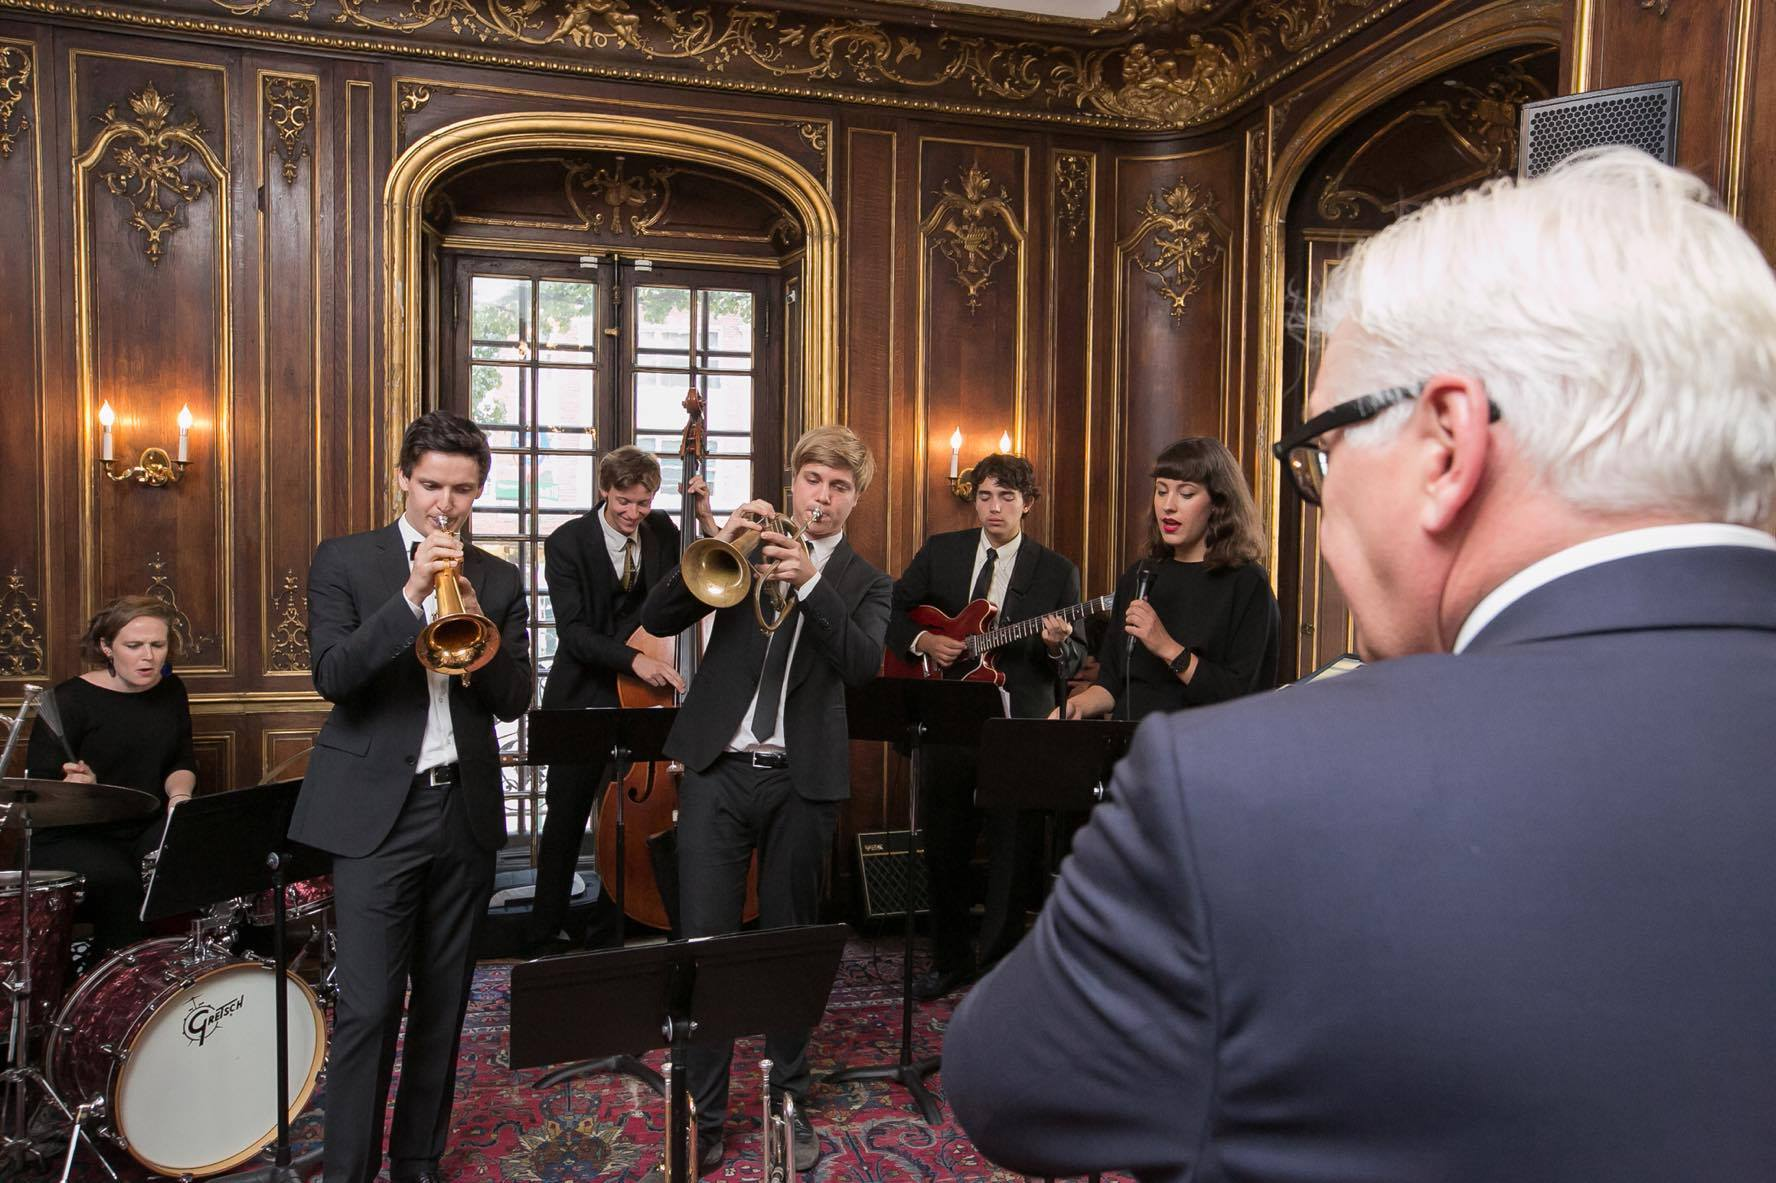 Mark at an otherwise 100%  GERMAN  occasion playing re-imagined Martin Luther music for Minister of Foreign Affairs Frank-Walter Steinmeier at the Morgan Library